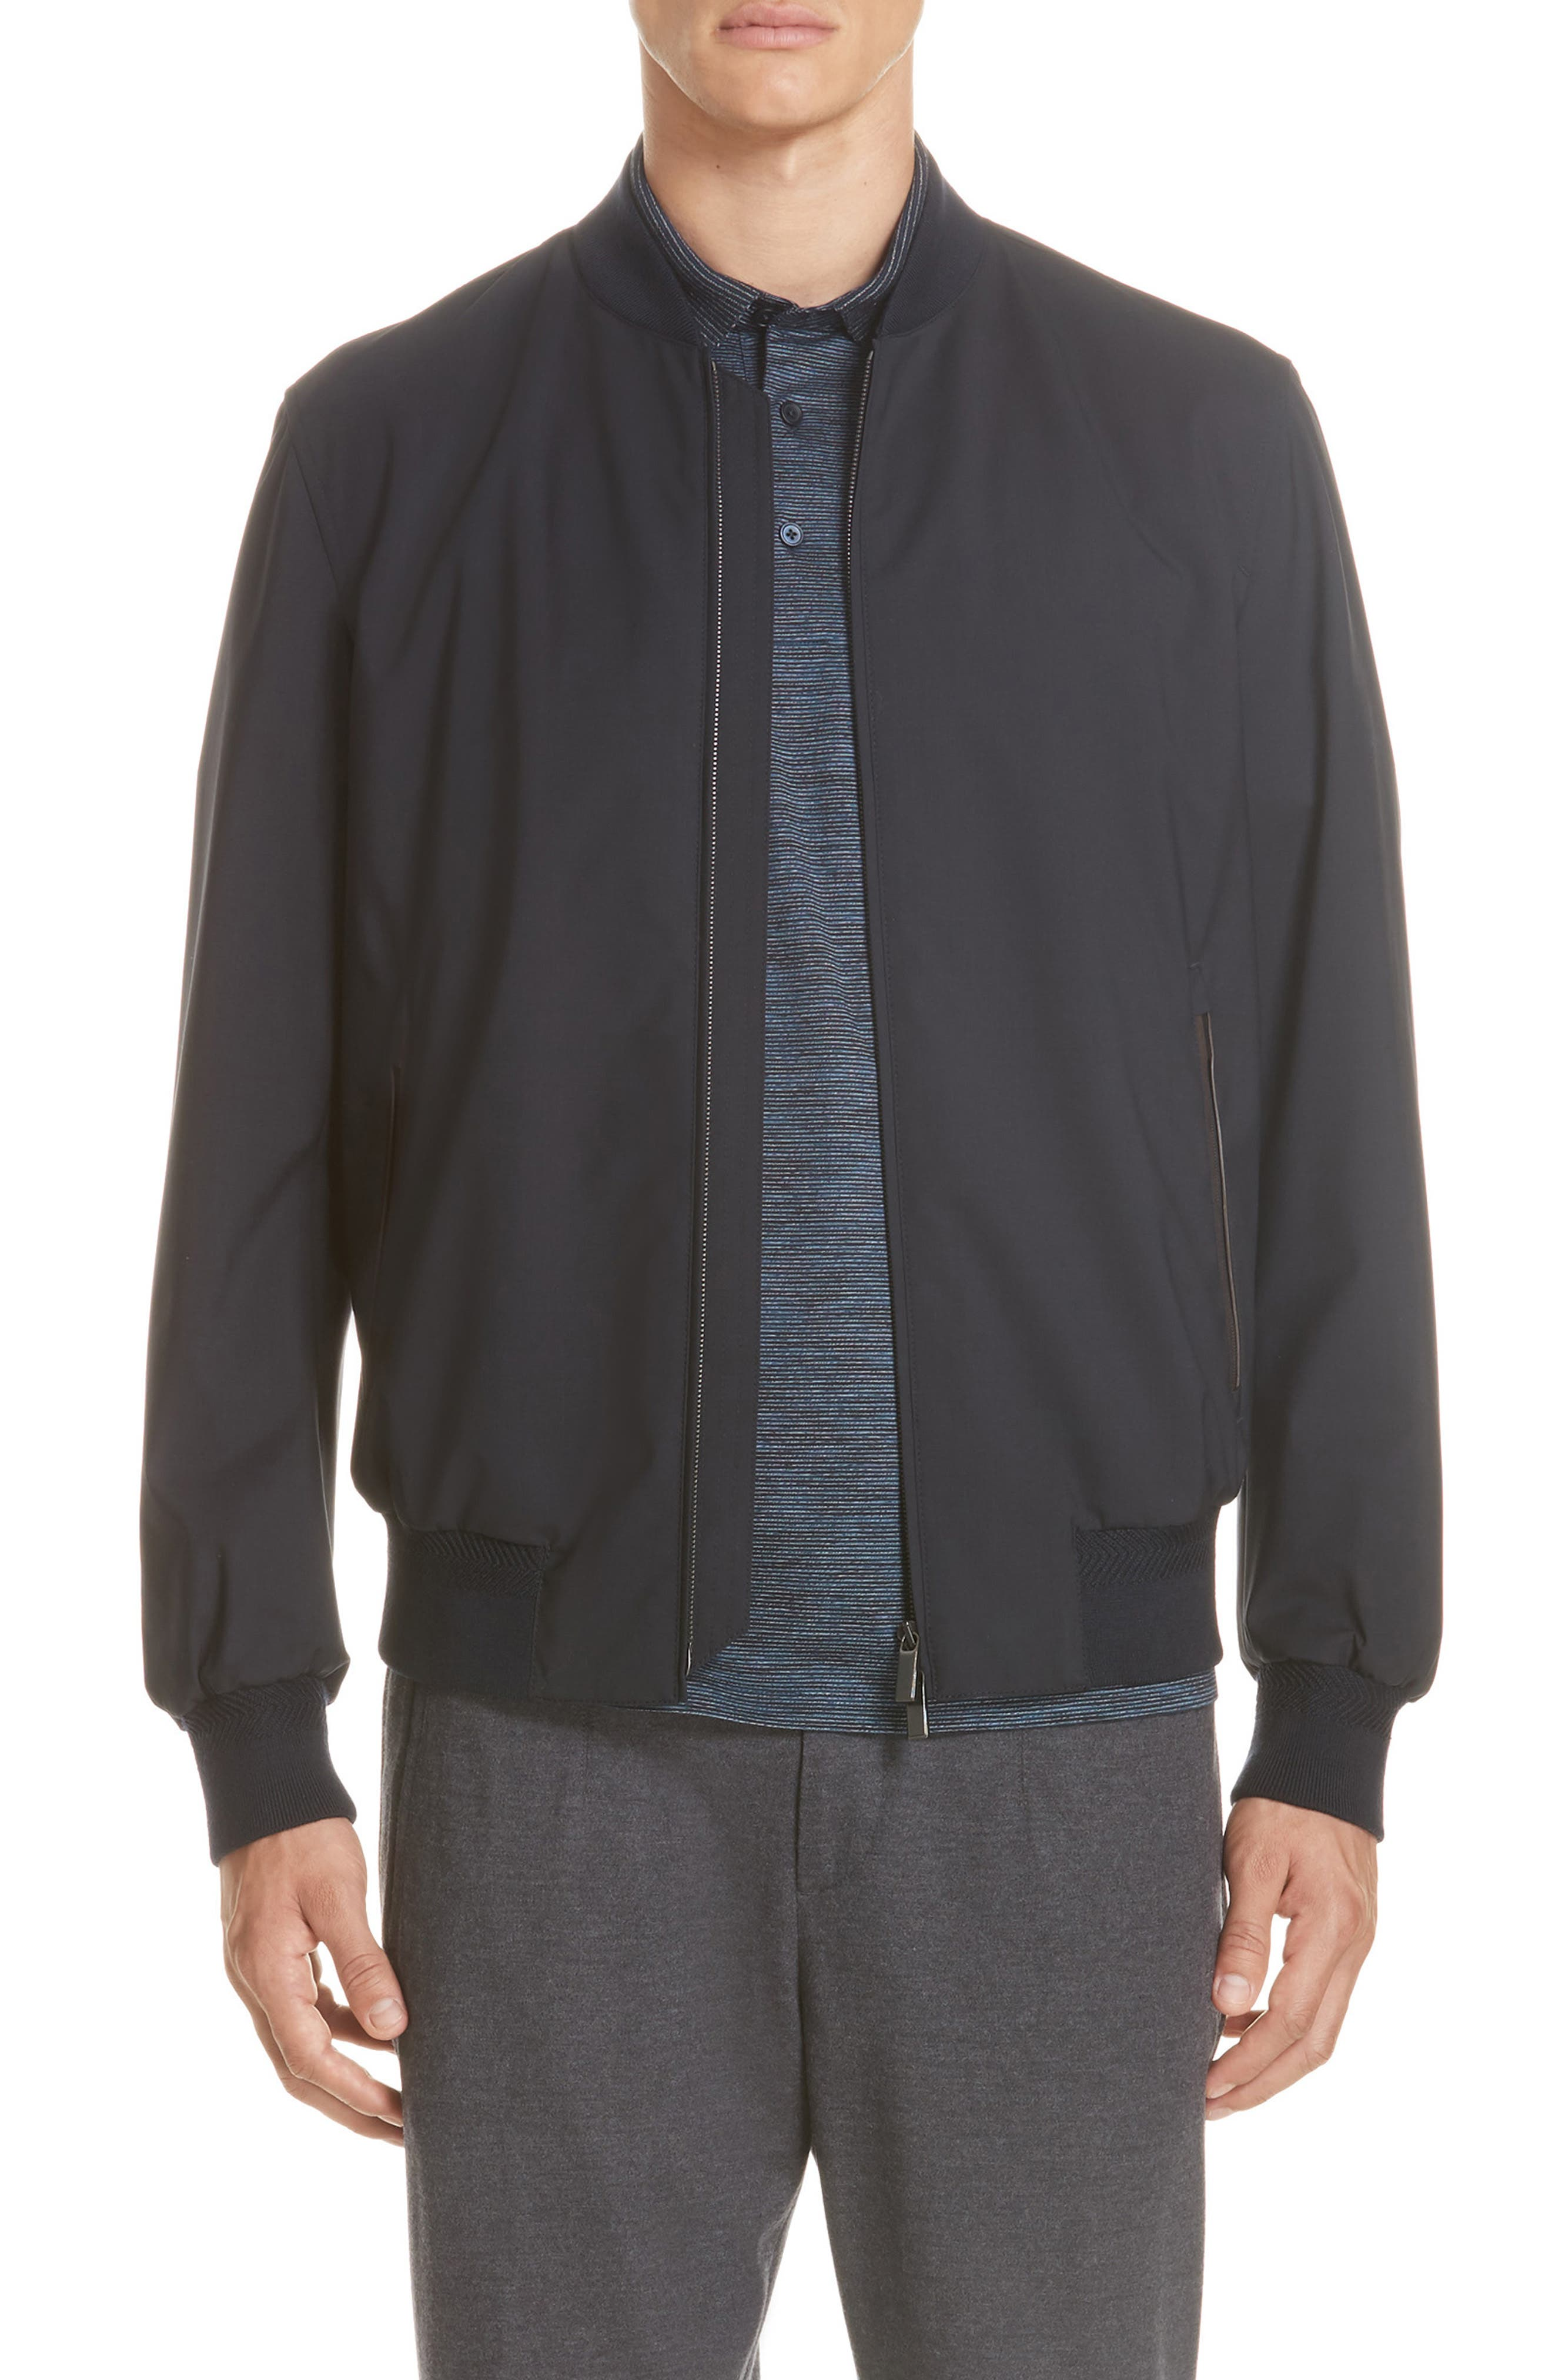 Trofeo Wool Jacket,                         Main,                         color, NAVY